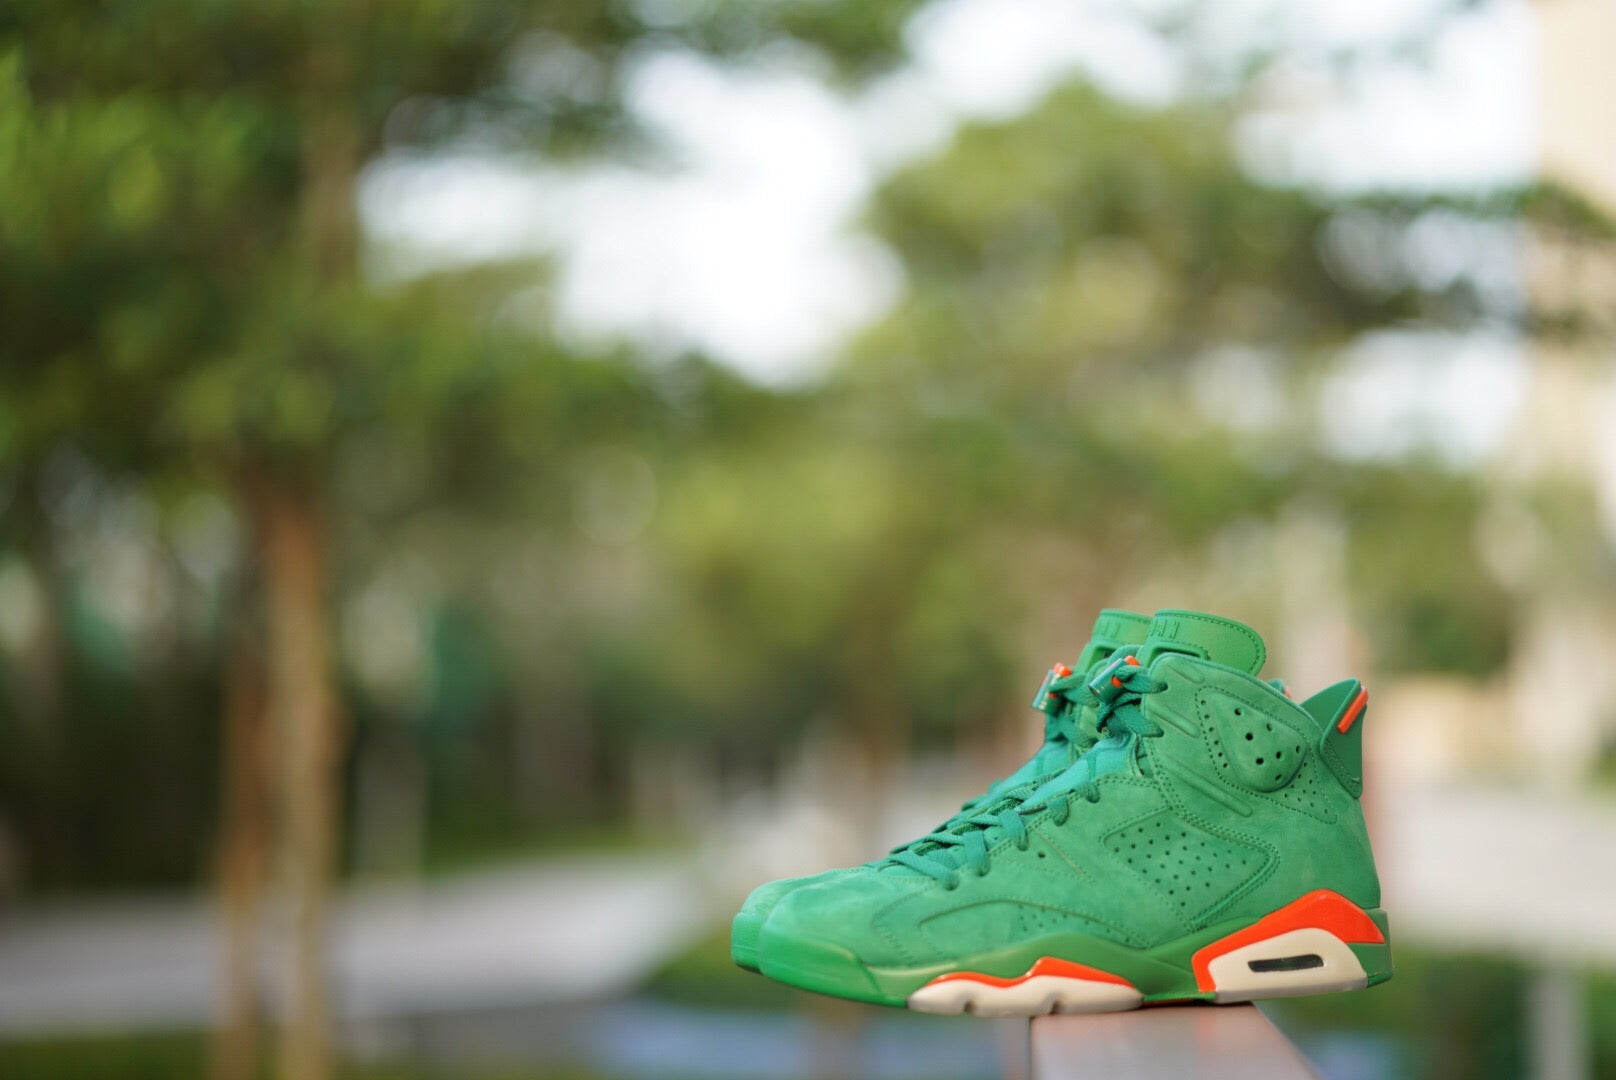 https://www.swishsupply.com/collections/all/products/air-jordan-6-gatorade-green-suede